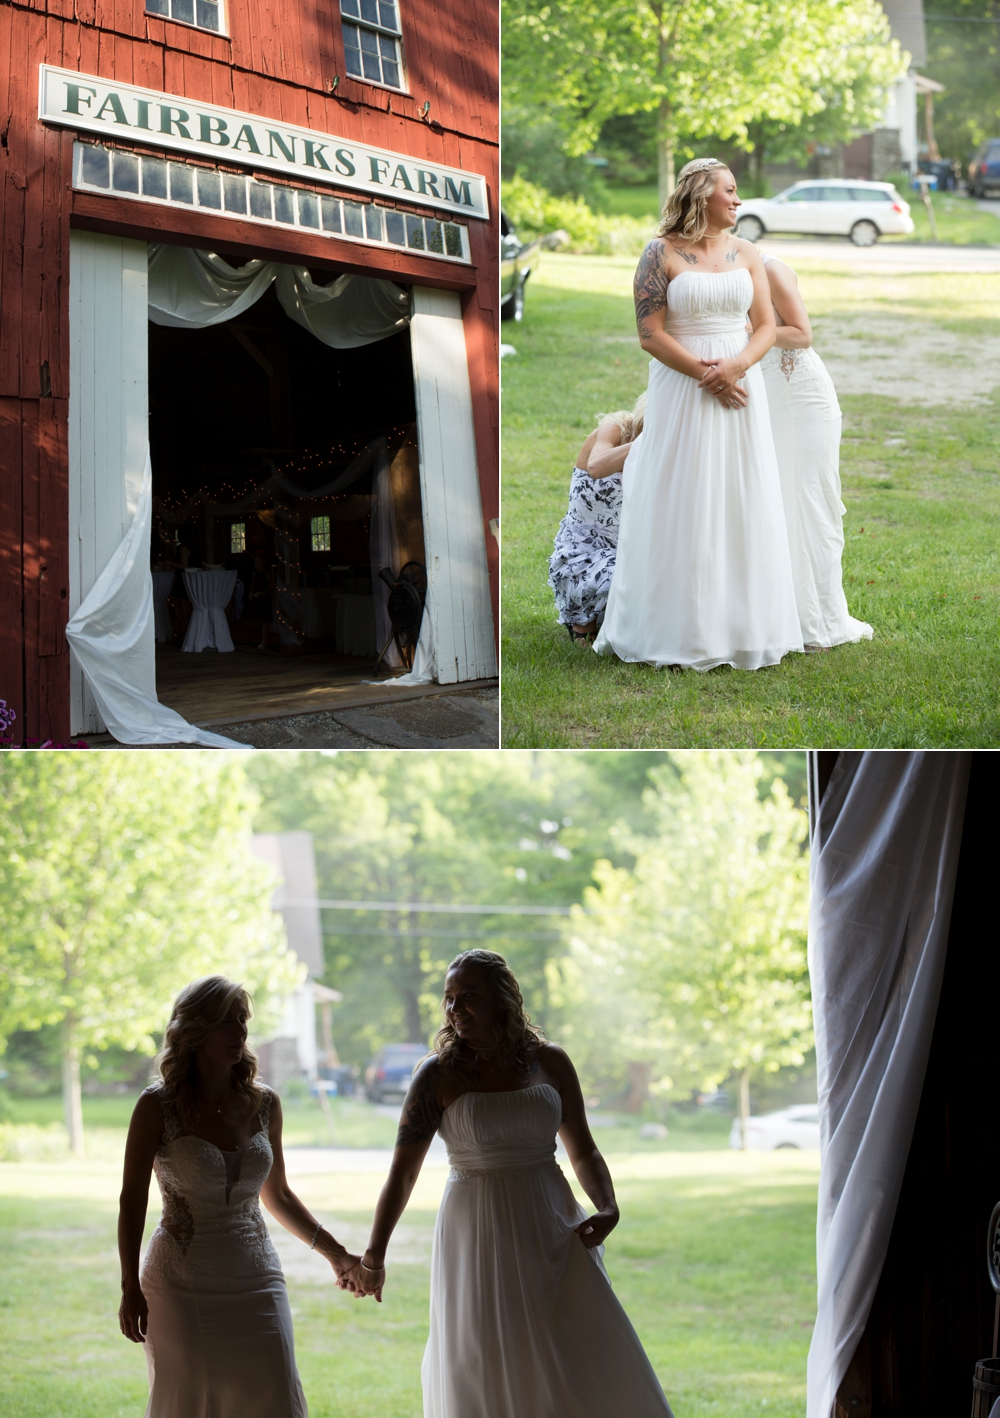 FairbanksFarm_Wedding_Jill&Lori_0025.jpg